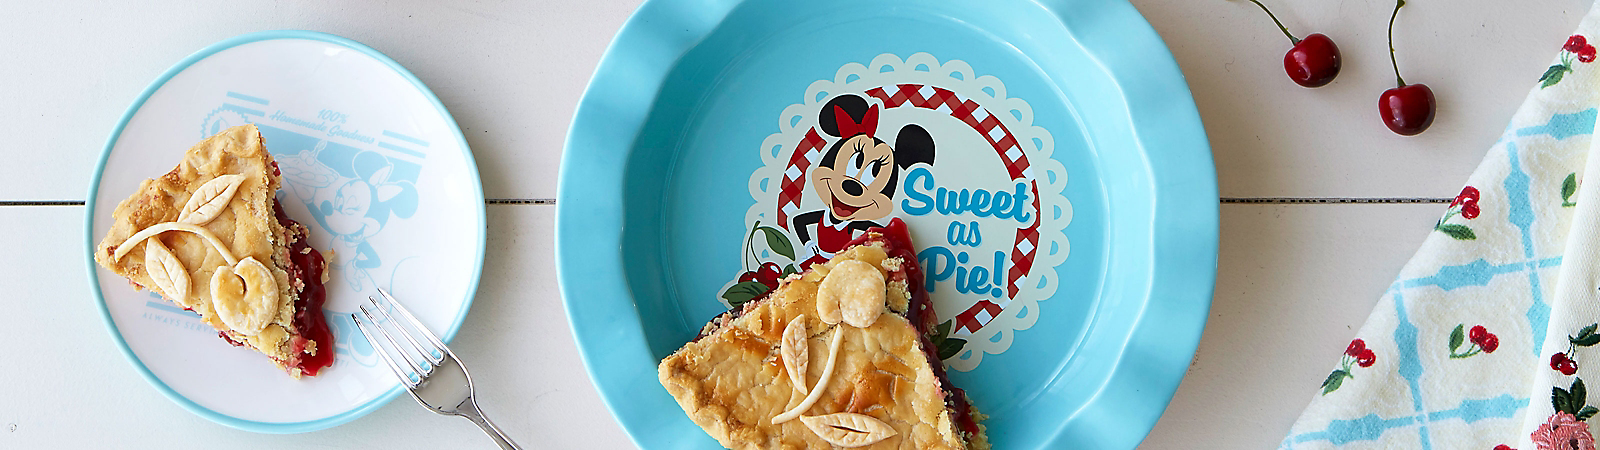 Pie slices on Mickey and Minnie plates